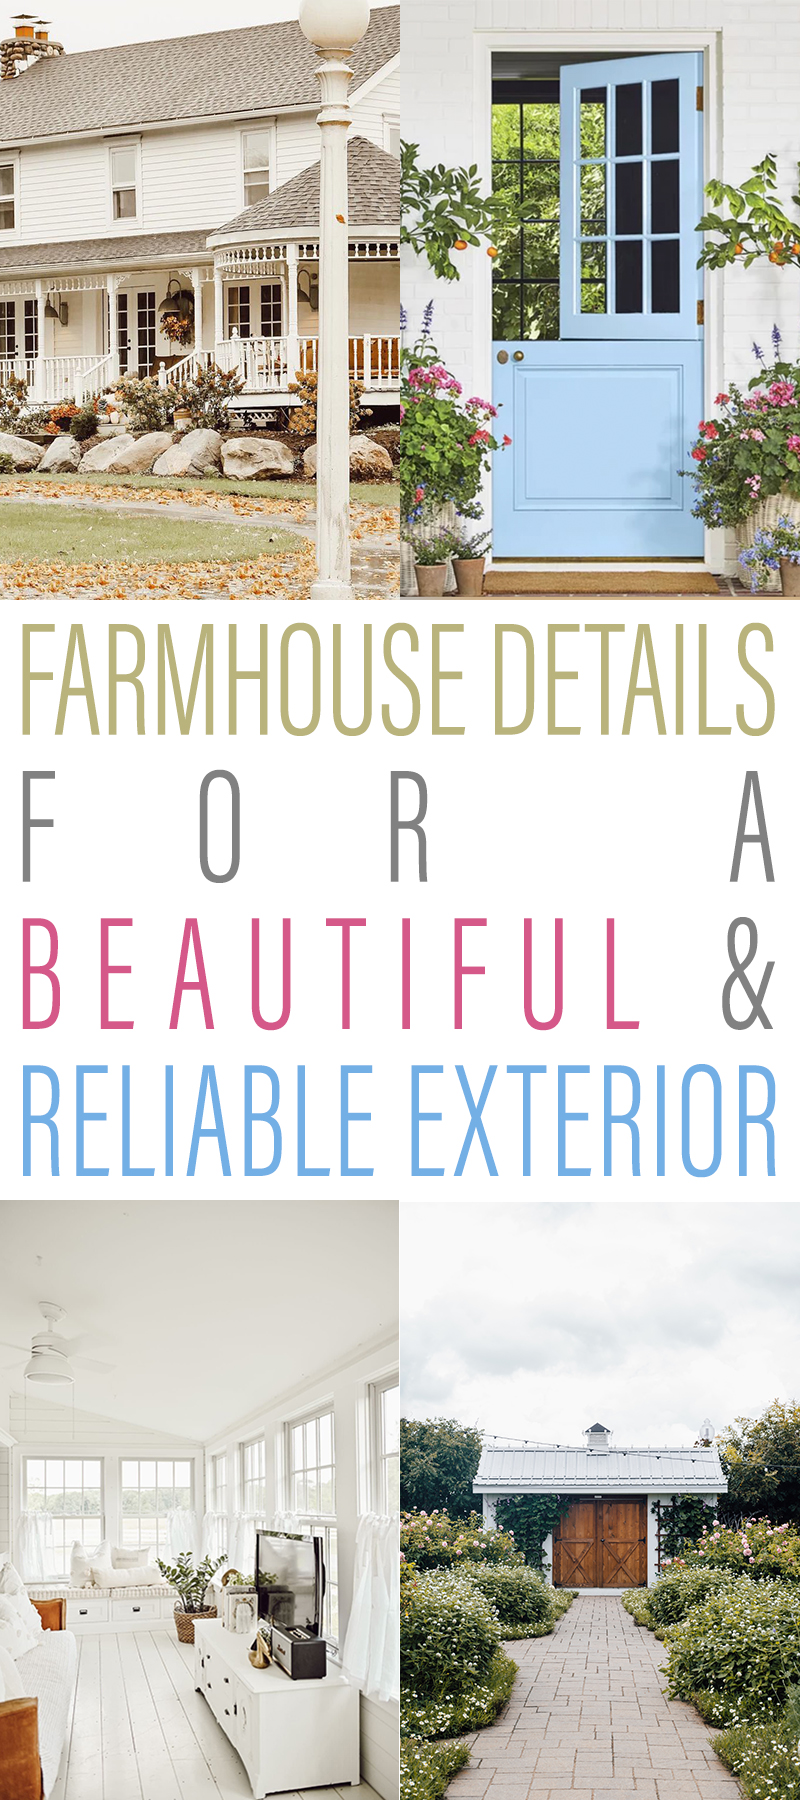 Farmhouse Details for a Beautiful and Reliable Exterior Ideas will help you as you stylize the outside of your wonderful home.